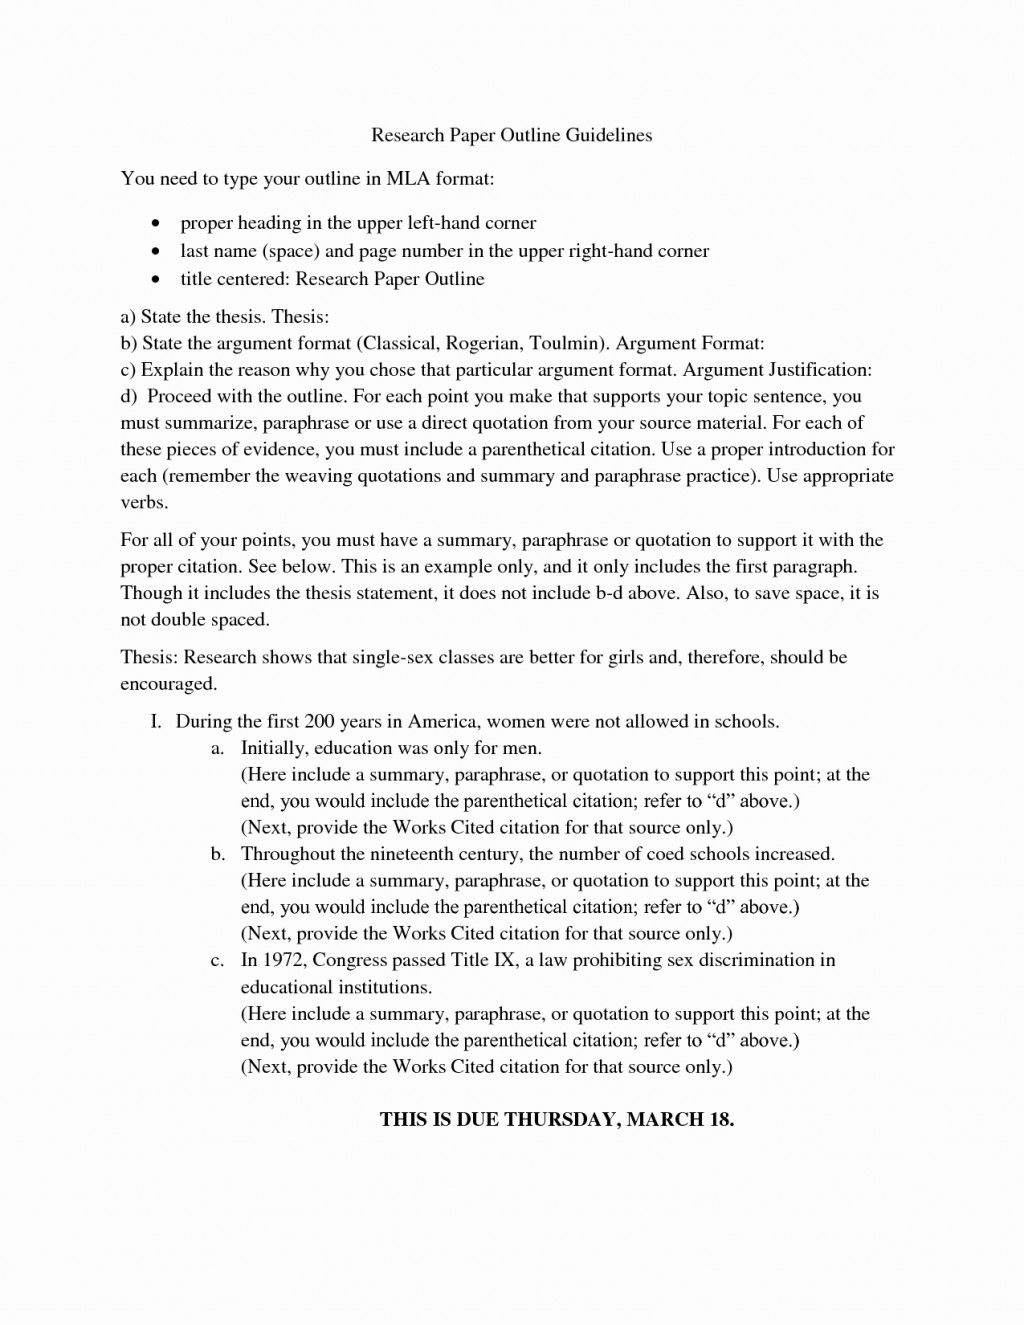 017 College Research Paper Outline Mla Format For Papers Unique Example Bamboodownunder Rare Large